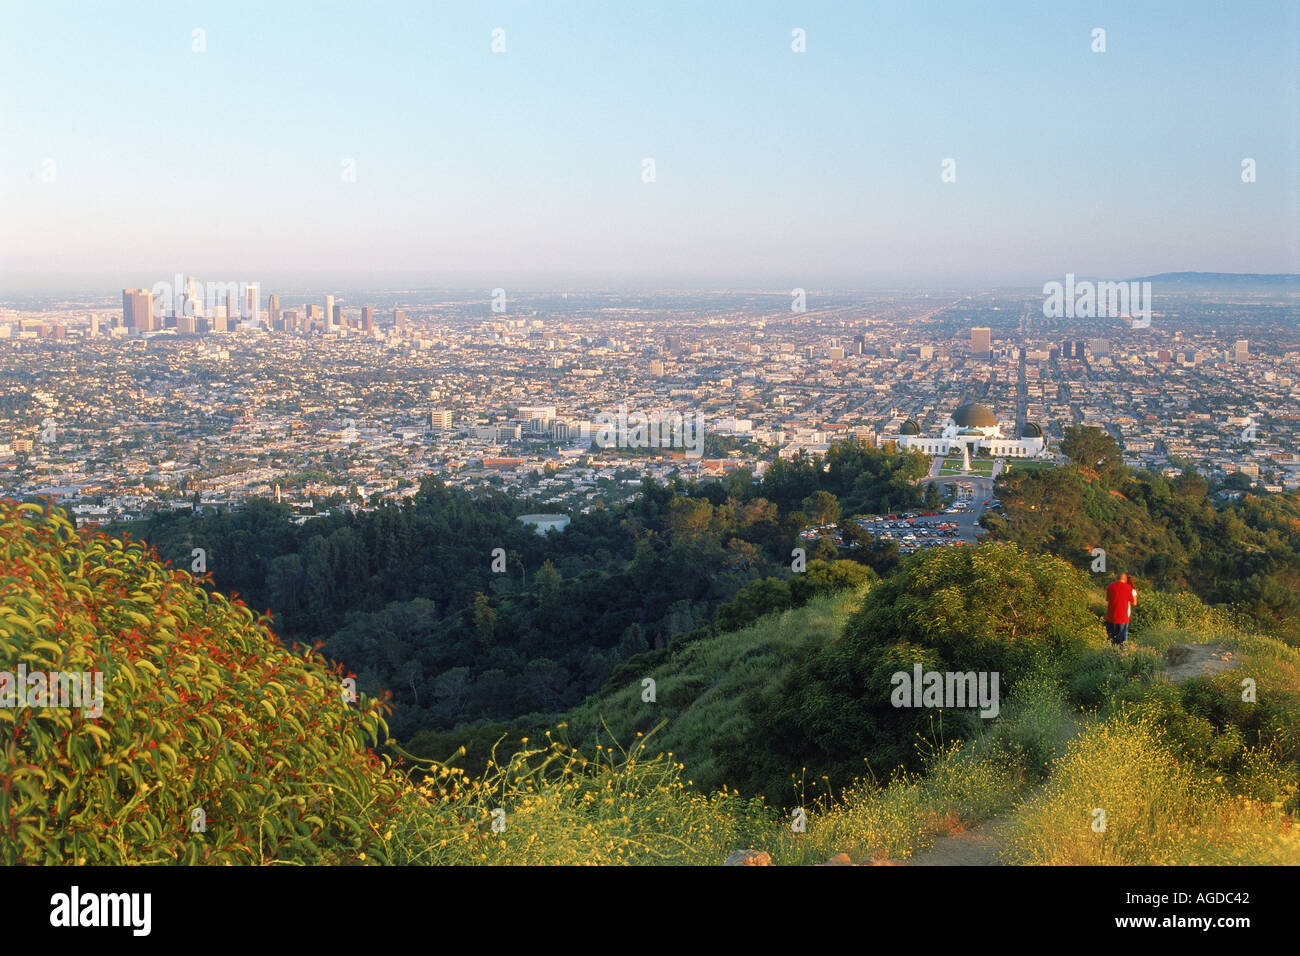 Overview of Los Angeles urban sprawl from above Griffith Park Observatory - Stock Image